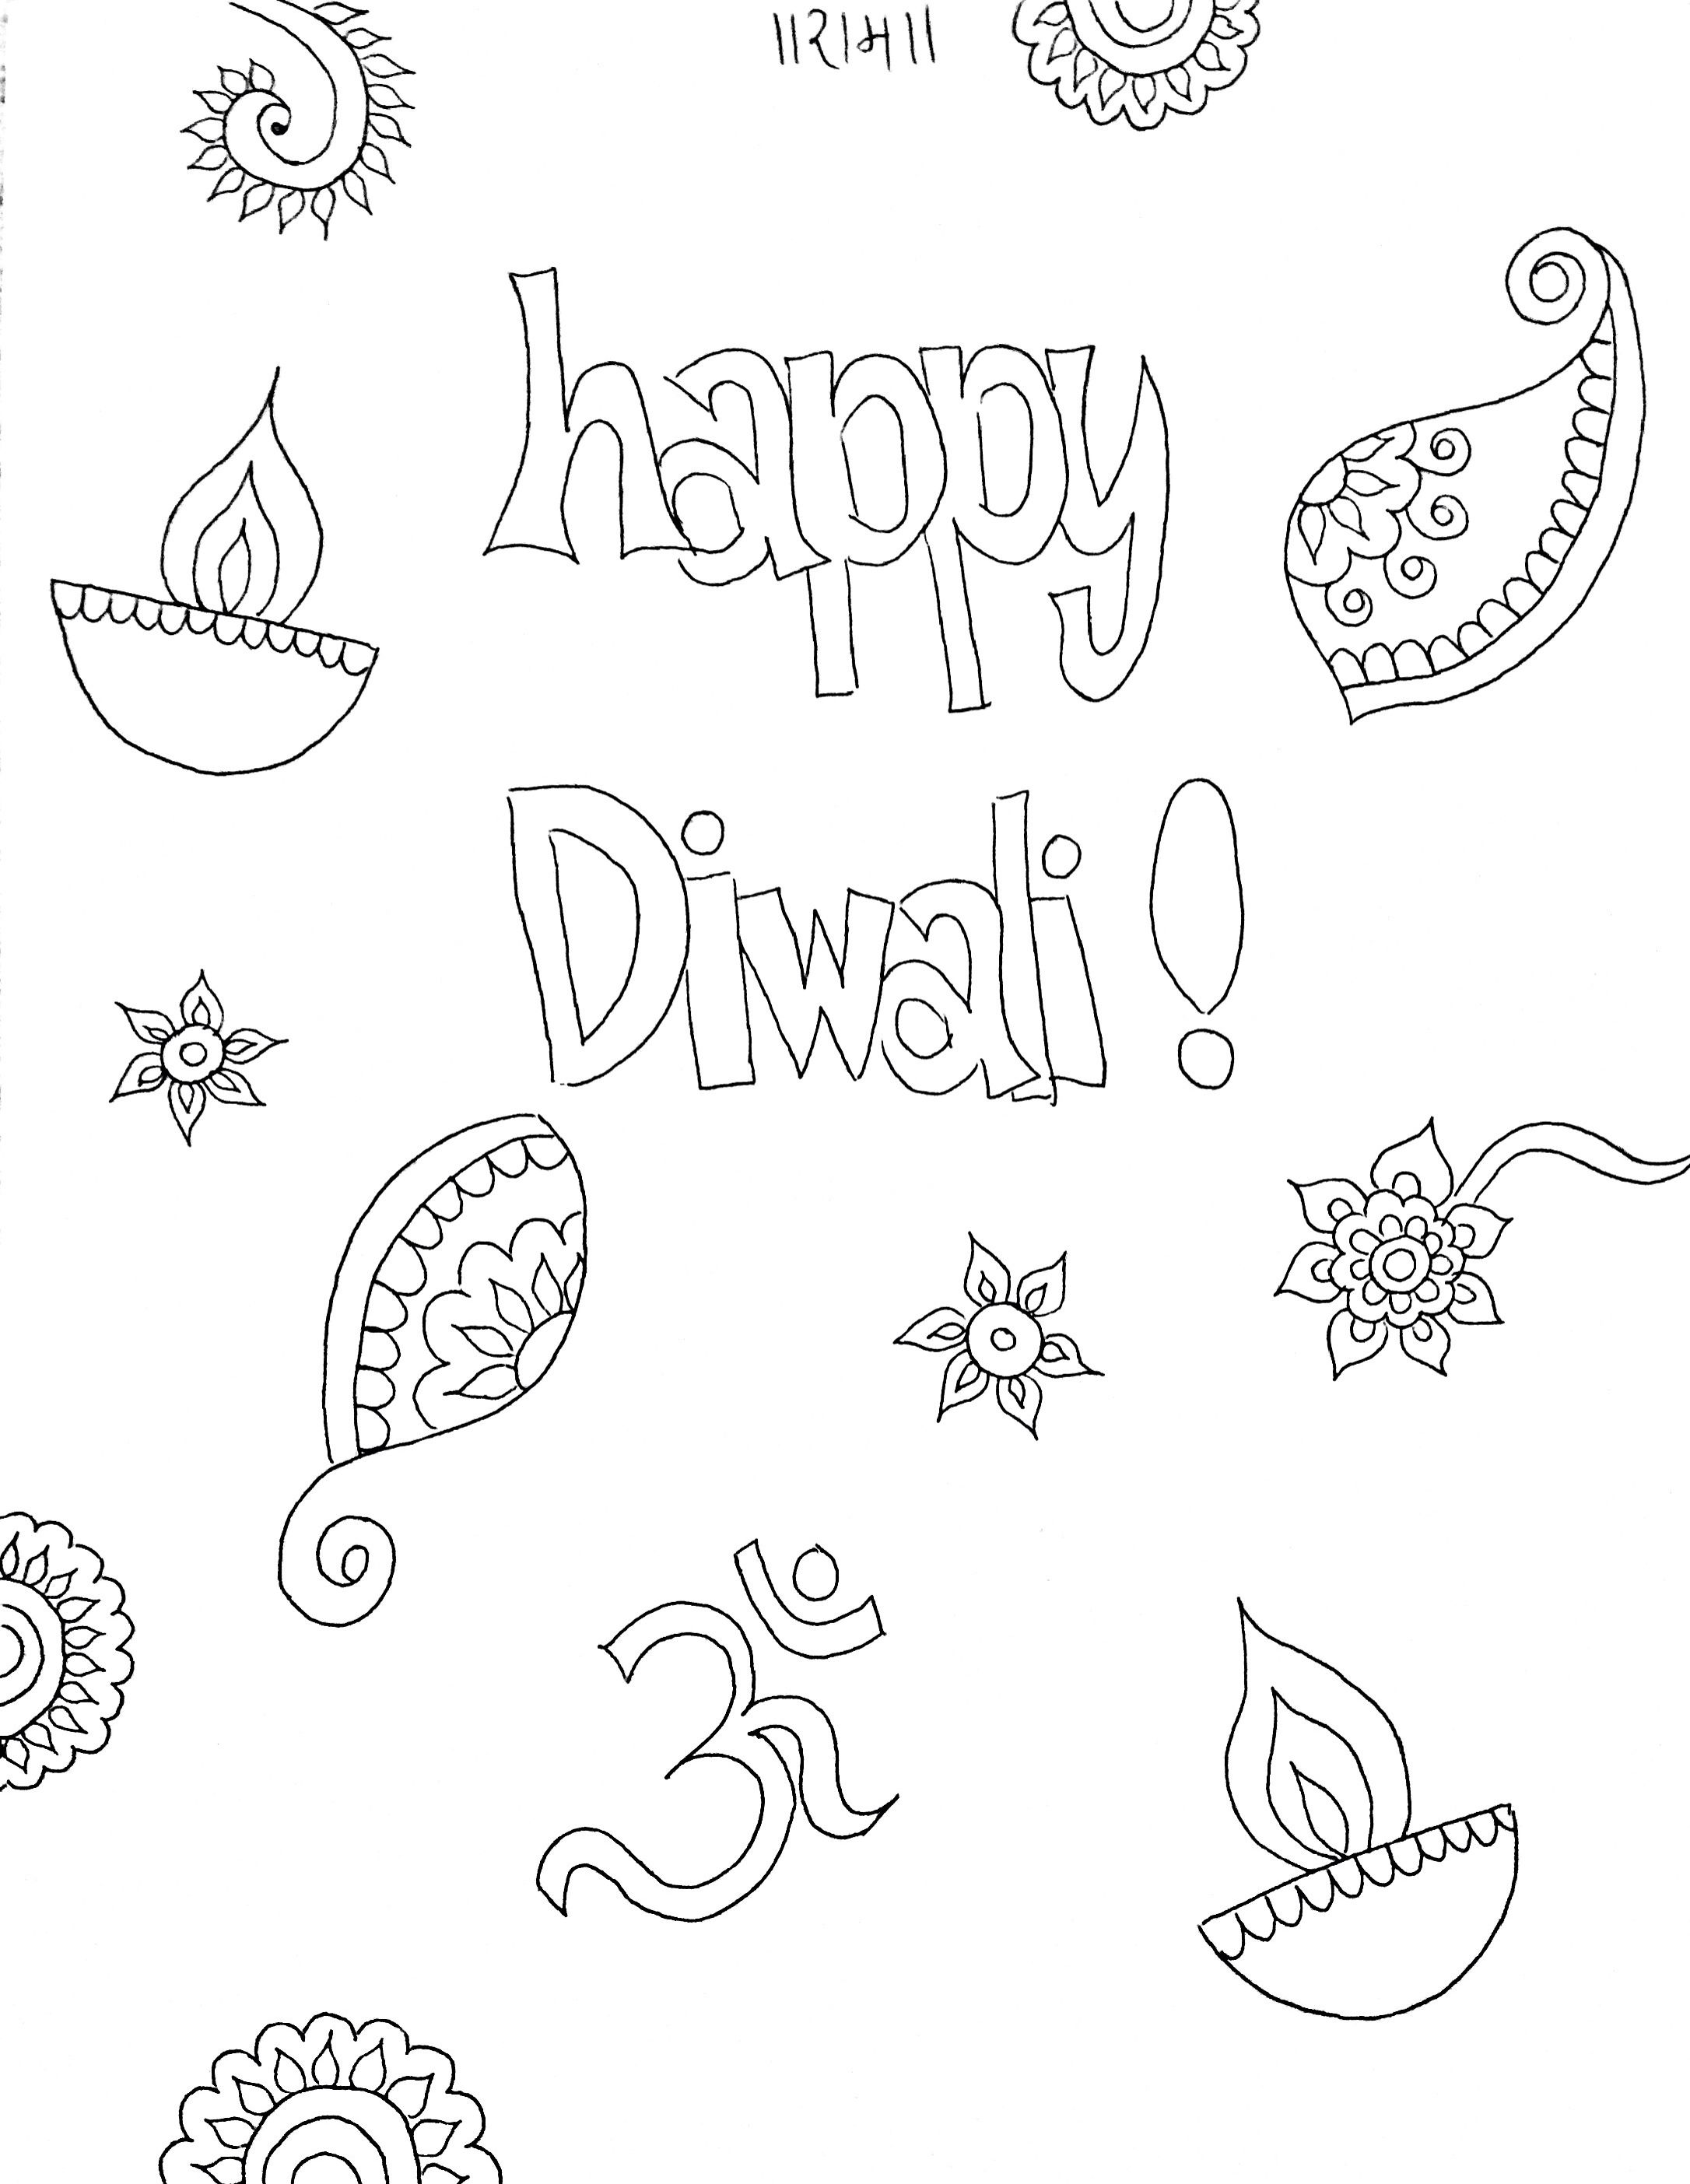 Diwali Coloring Sheet For Kids Diwali Drawing Drawing For Kids